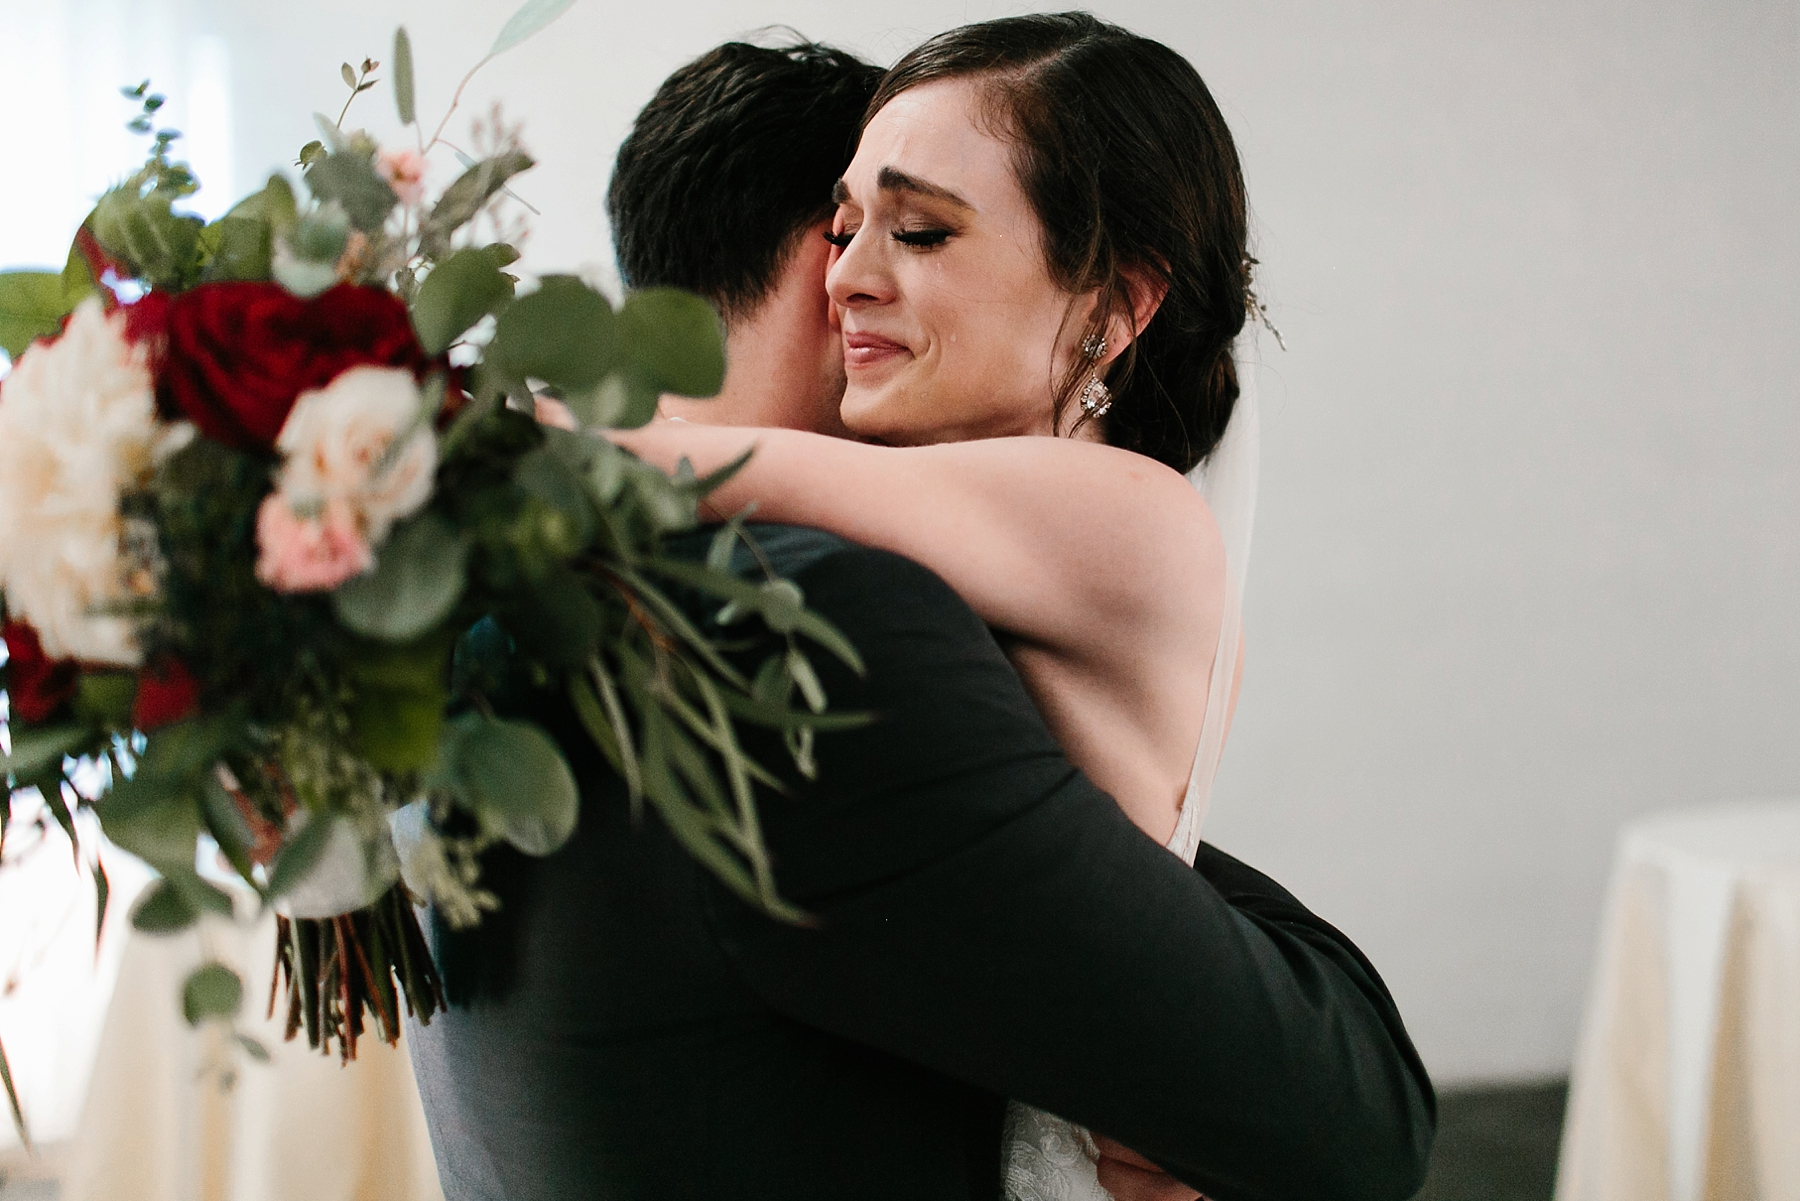 Emily + Caleb _ an elegant, intentional, industrial style wedding with navy + gold accents at 6500 in Dallas, TX by North Texas Wedding Photographer Rachel Meagan Photography _ 106